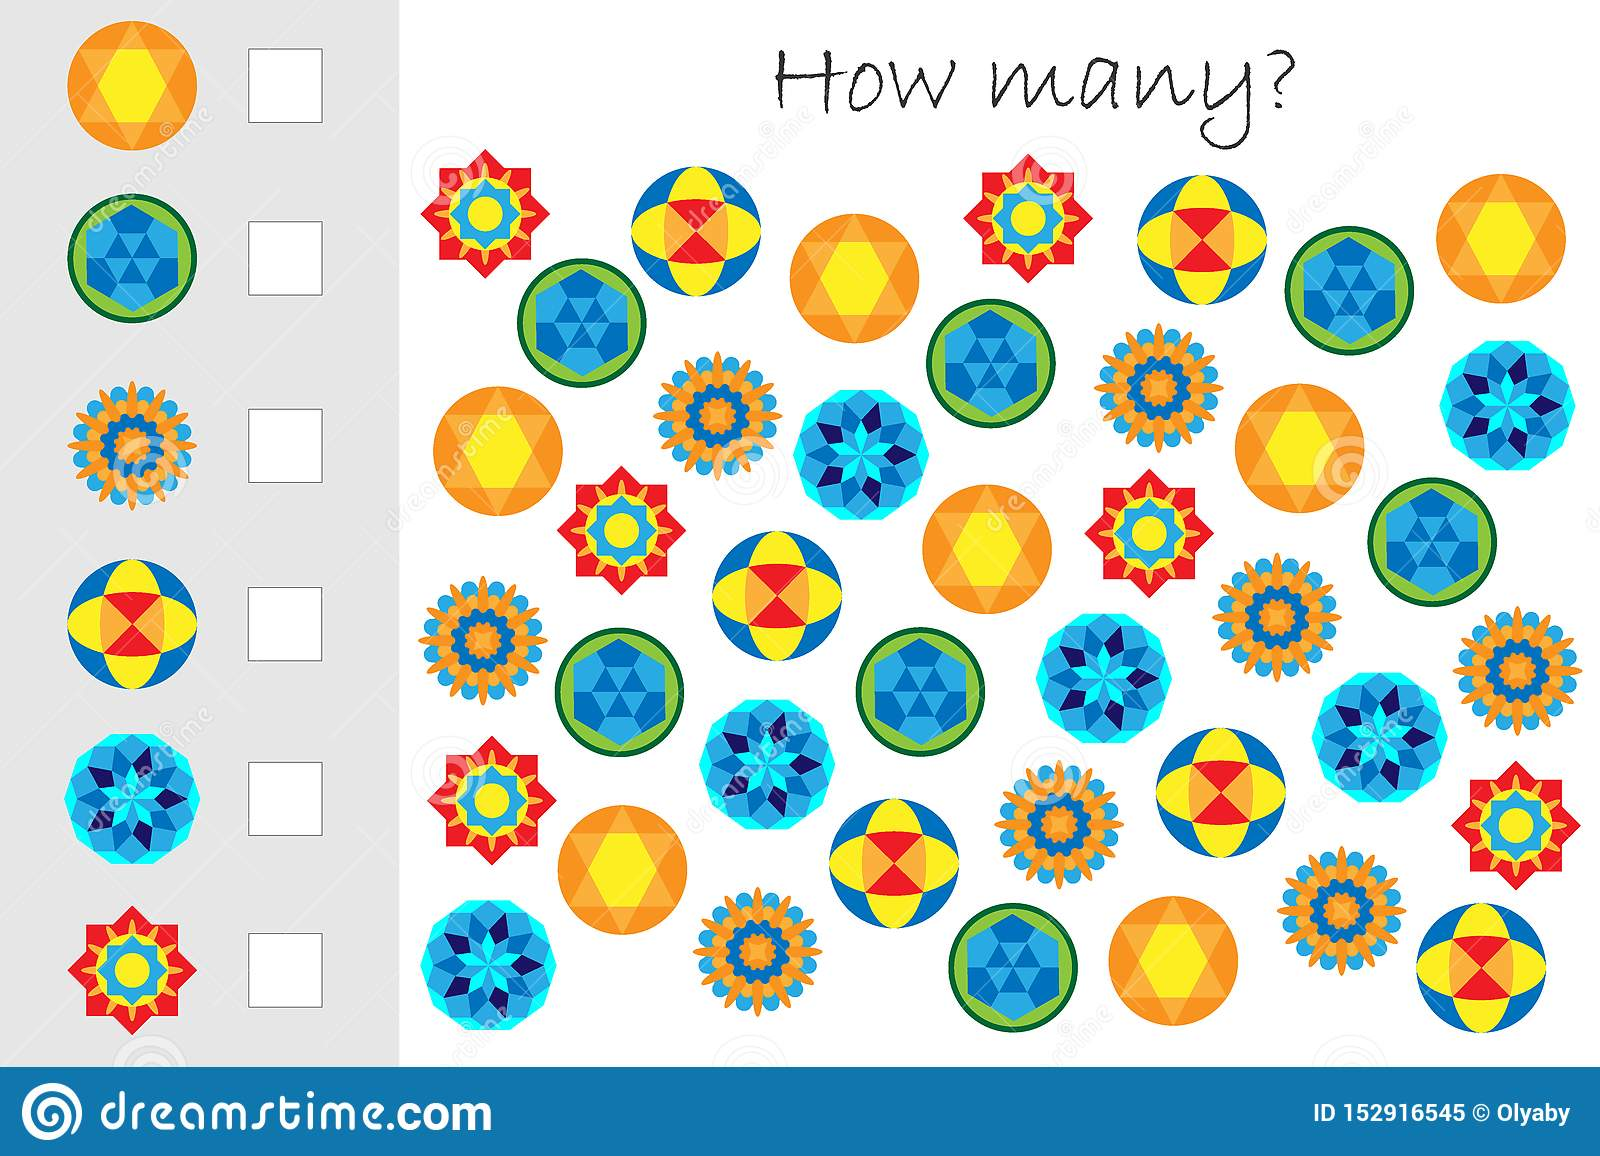 How Many Counting Game With Mandalas For Kids Educational